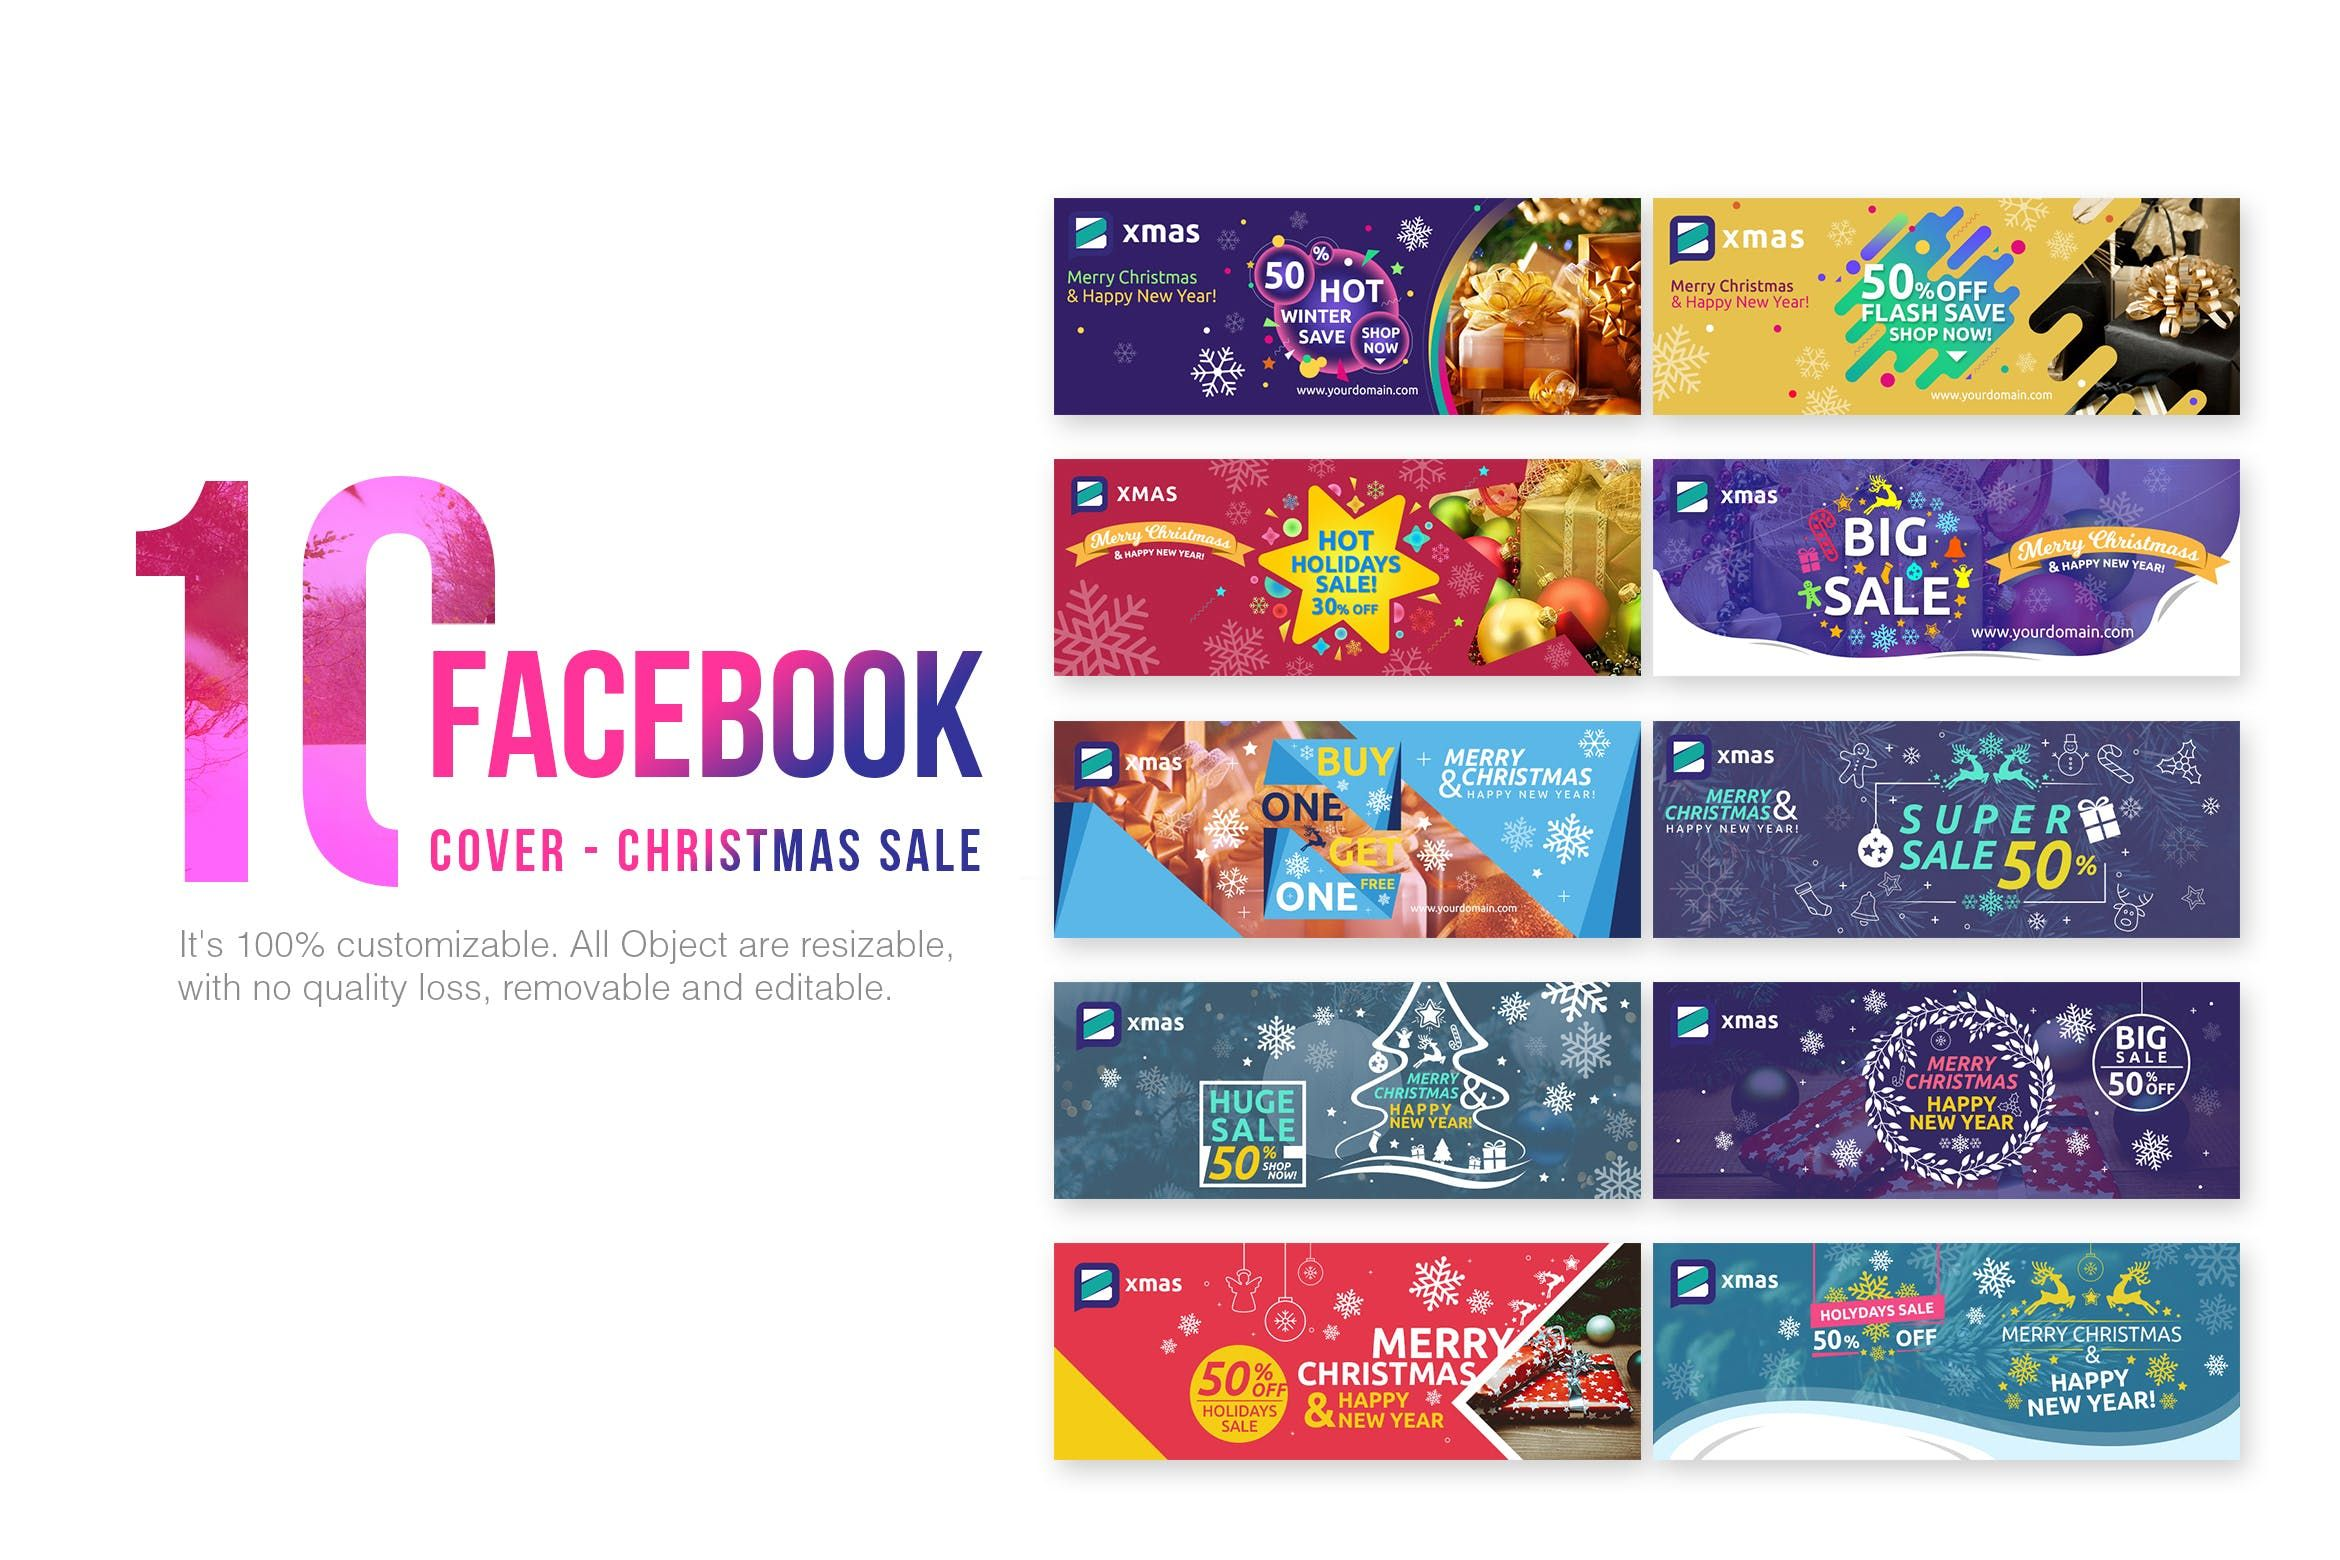 10 Facebook Cover-Christmas Sale #coupon, #cyber, #monday